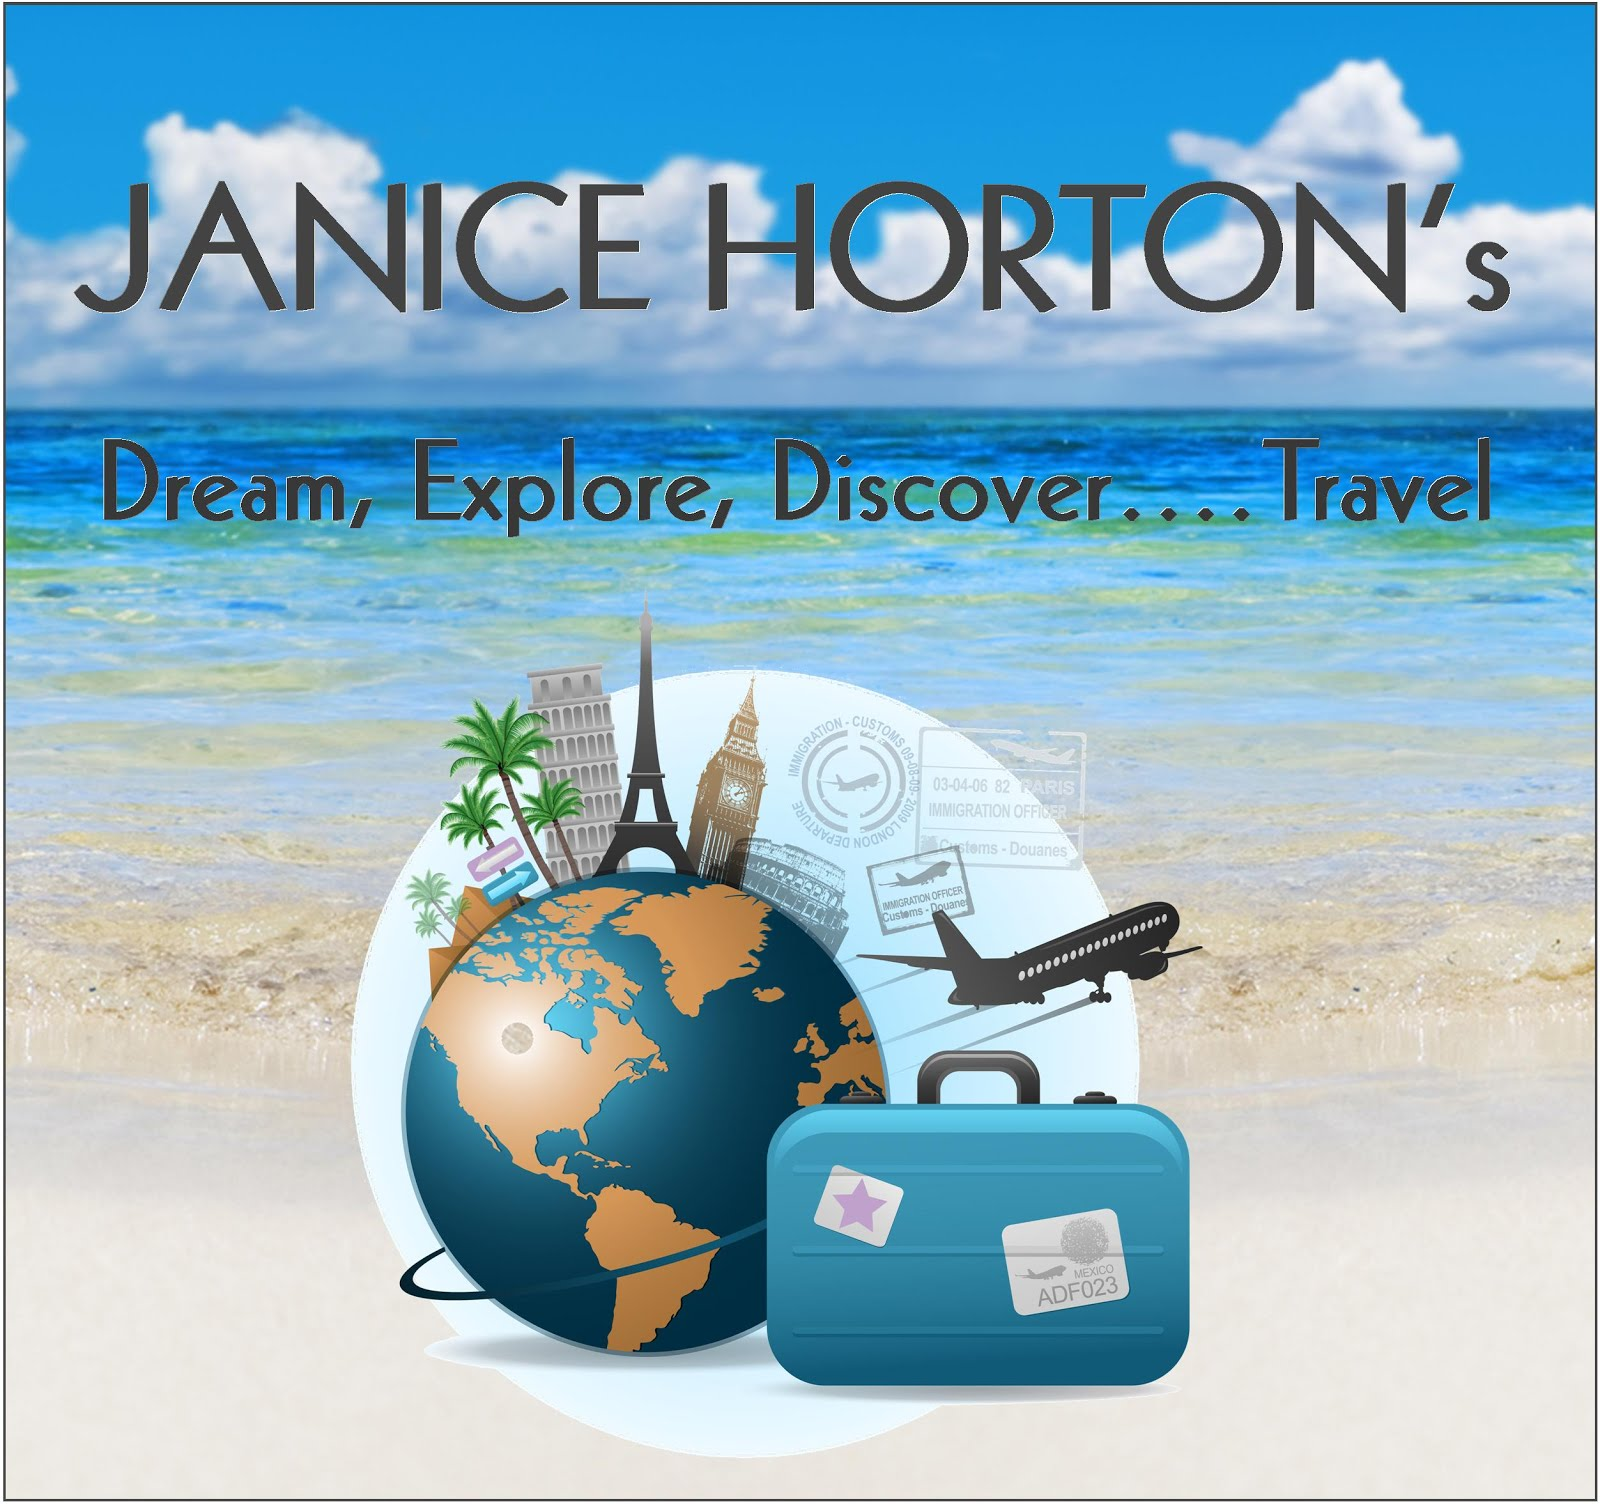 Dream, Explore, Discover...Travel! My NEW look travel feature for LLm Ezine!